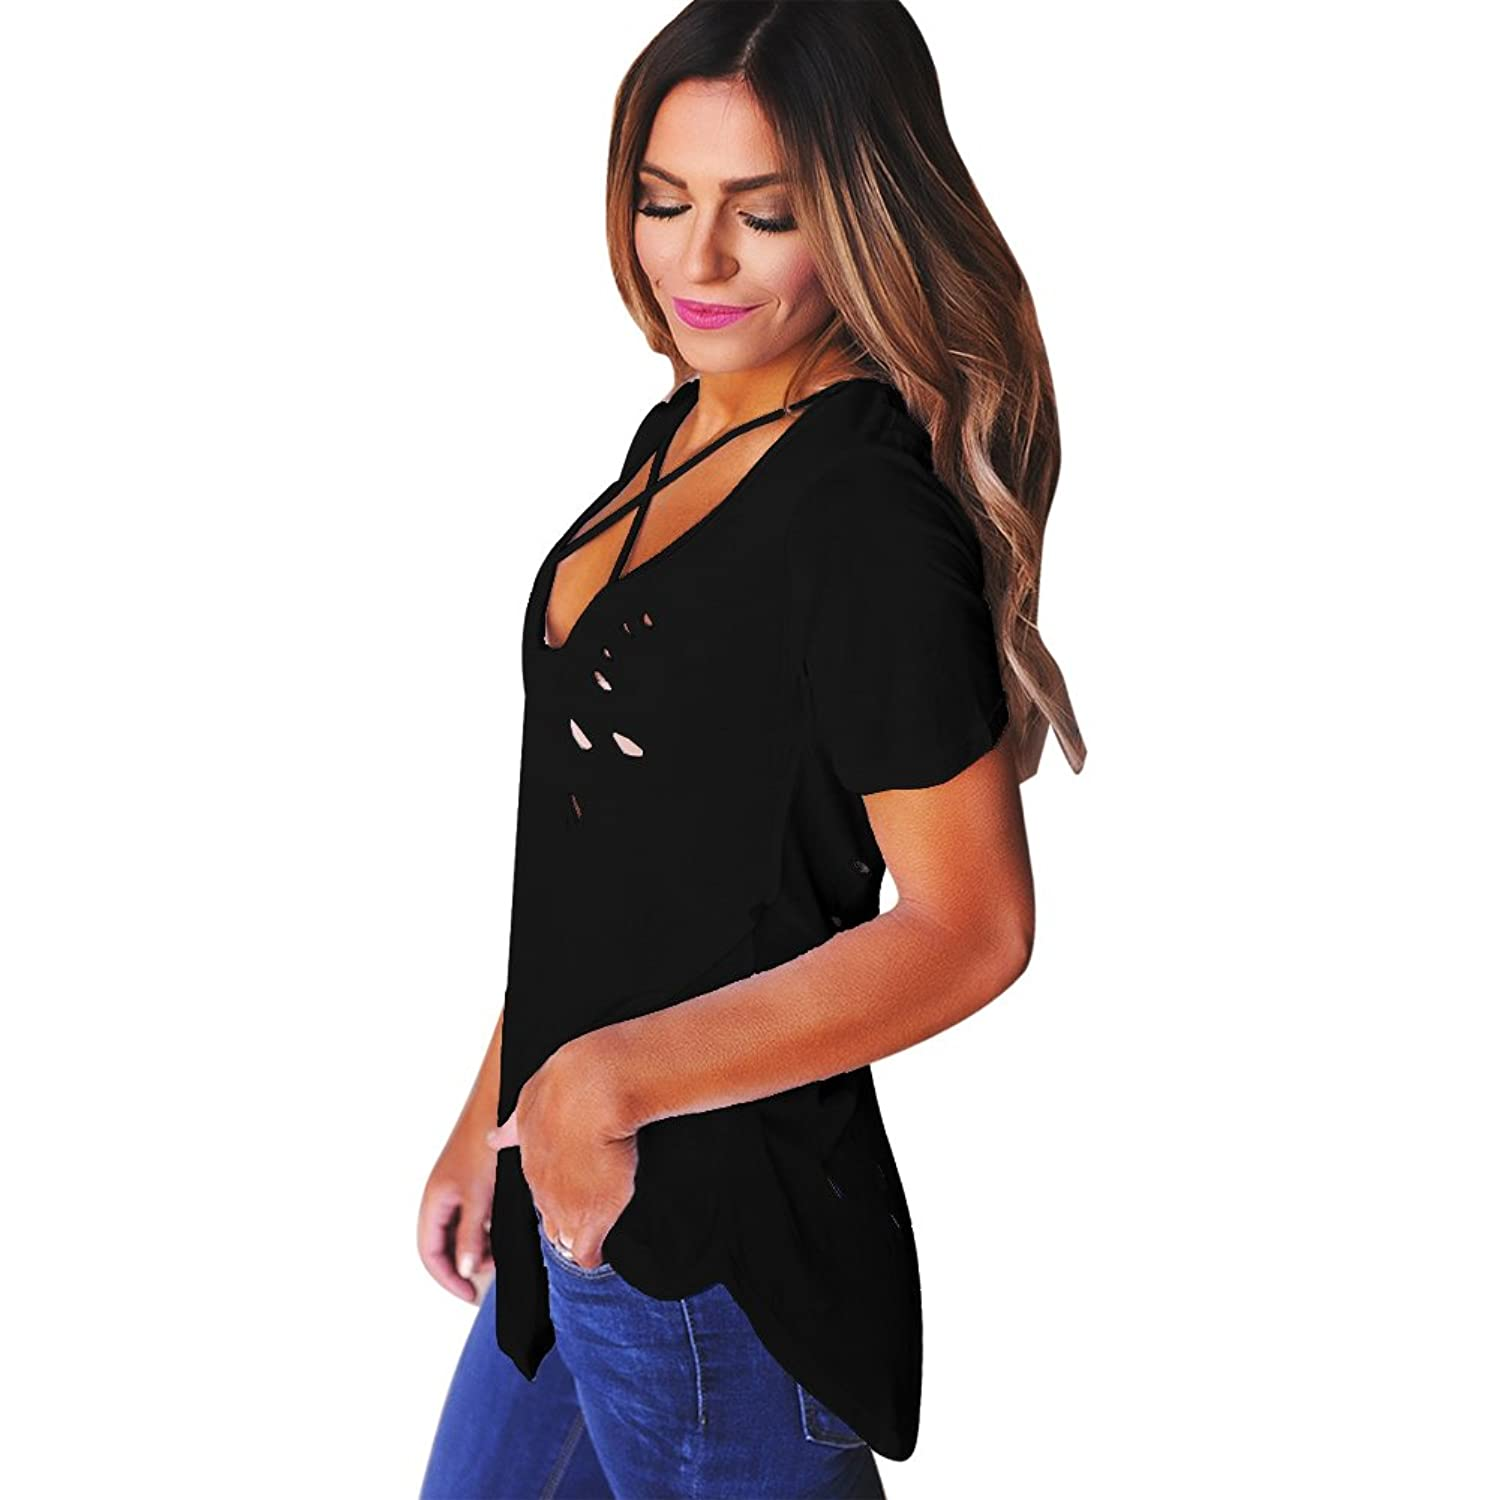 Imixcity Women Sexy Deep V Neck Hole Ripped T-Shirt Crisscross Front  Destroyed Tee Baggy Tops Clubwear Plus Size: Amazon.co.uk: Clothing